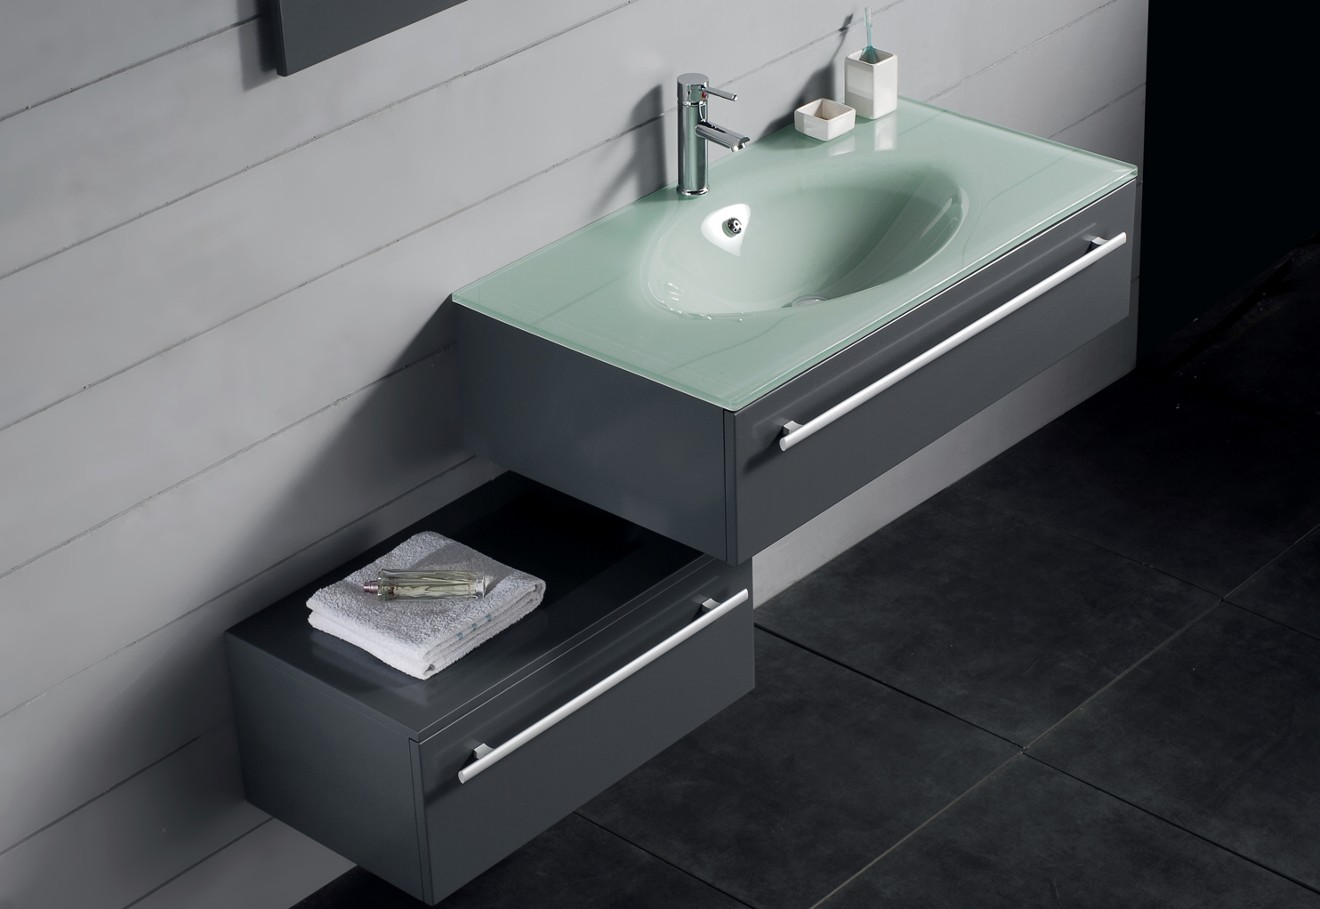 Modern bathroom vanity triton for Modern bathroom vanity designs